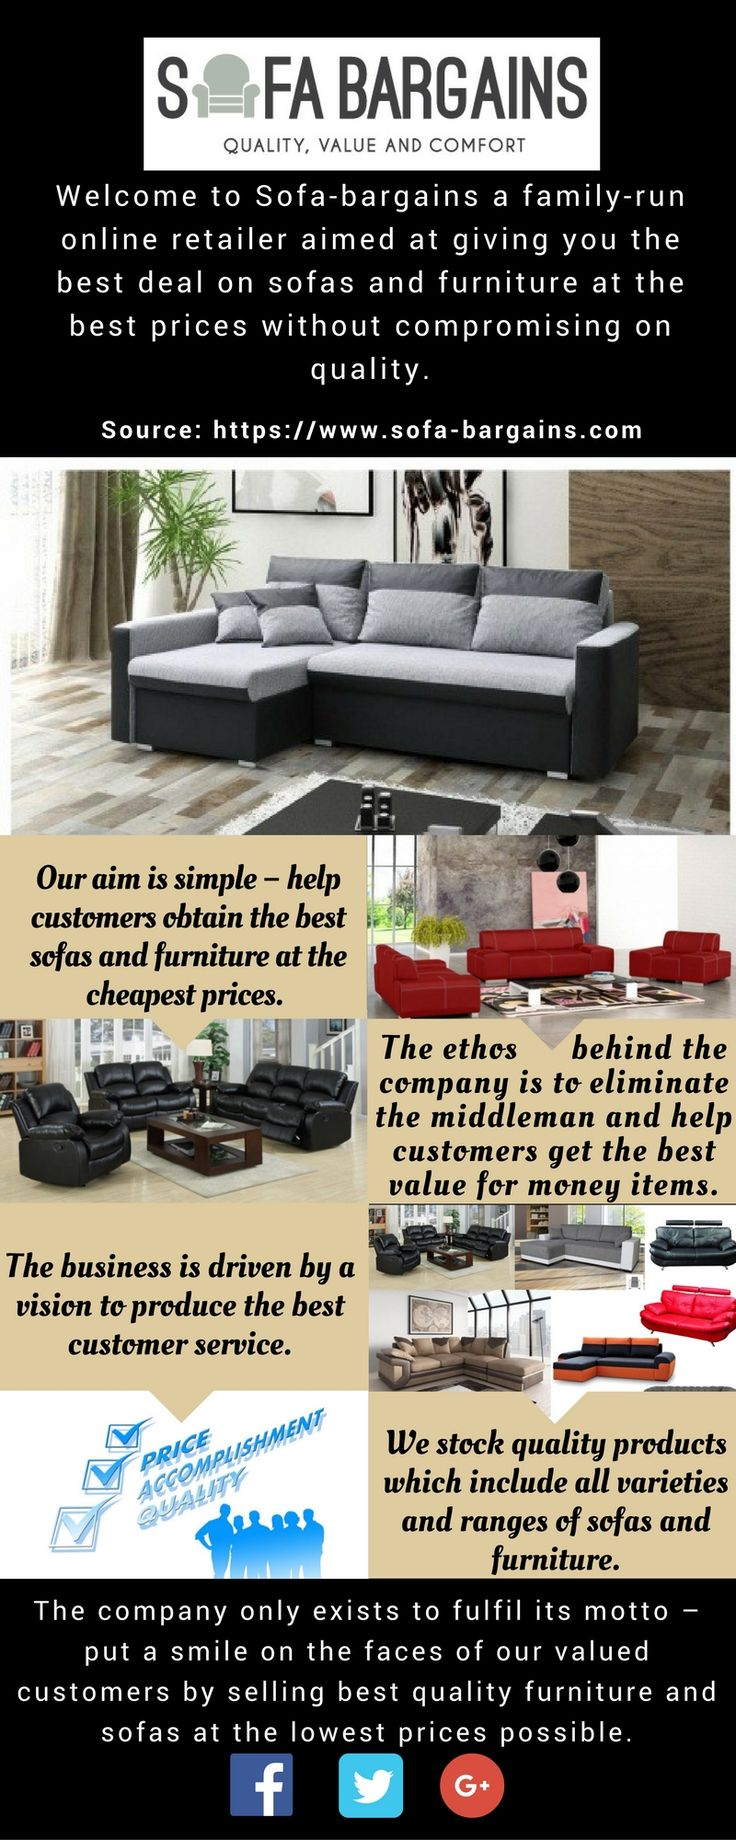 Sofa-bargains is a family-run online retailer aimed at giving you the best deal on sofas and furniture at the best prices without compromising on quality. Our aim is to help customers by providing the best sofas and furniture at the cheapest prices.